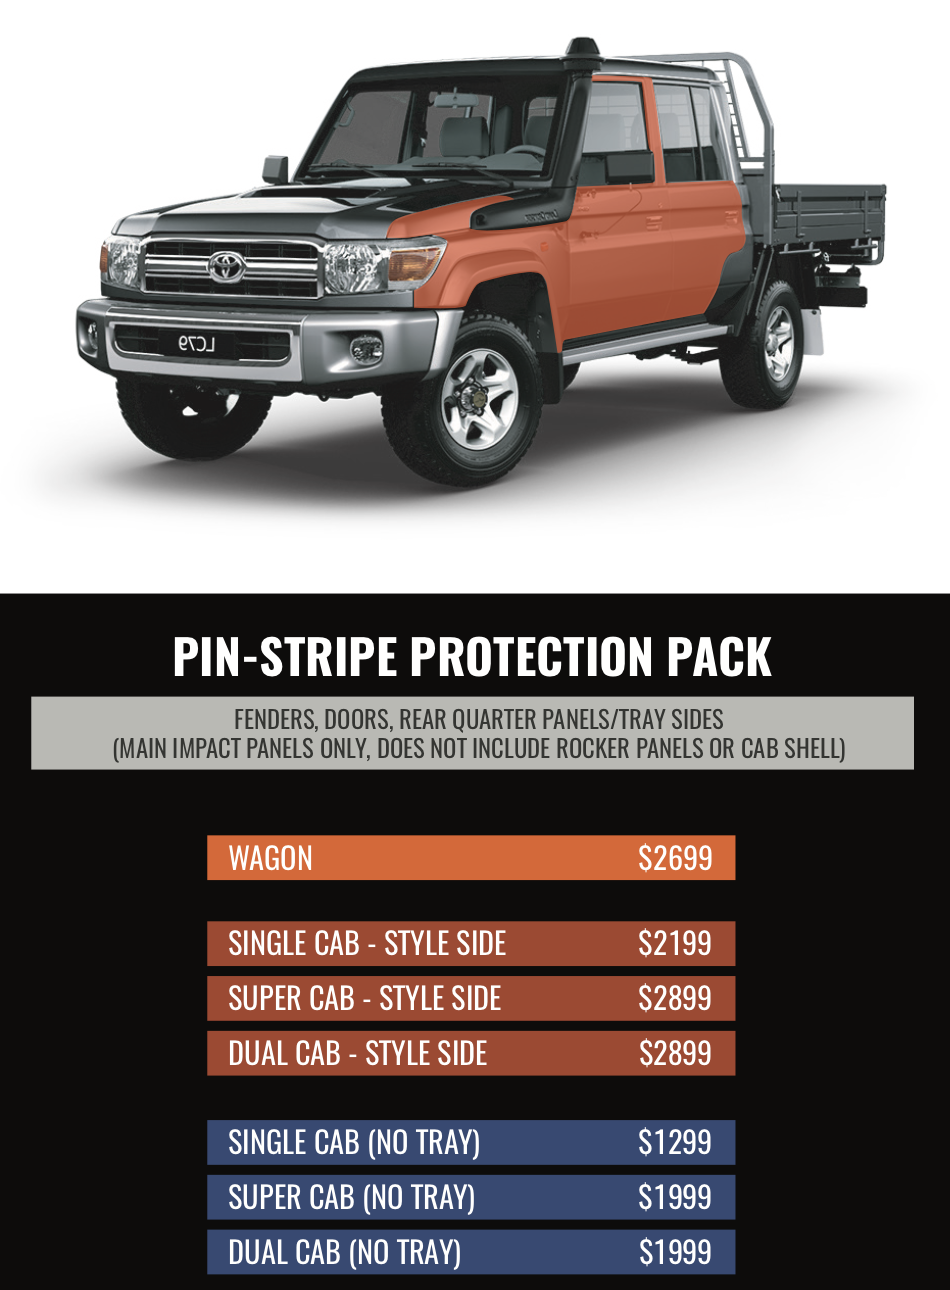 4x4 PIN-STRIPE PROTECTION PACK - The best and most affordable 4x4 Kit. Protect your vehicle from the most common damage you can sustain from off-road driving. High wearing side panels protected from tree branches and pin-striping.